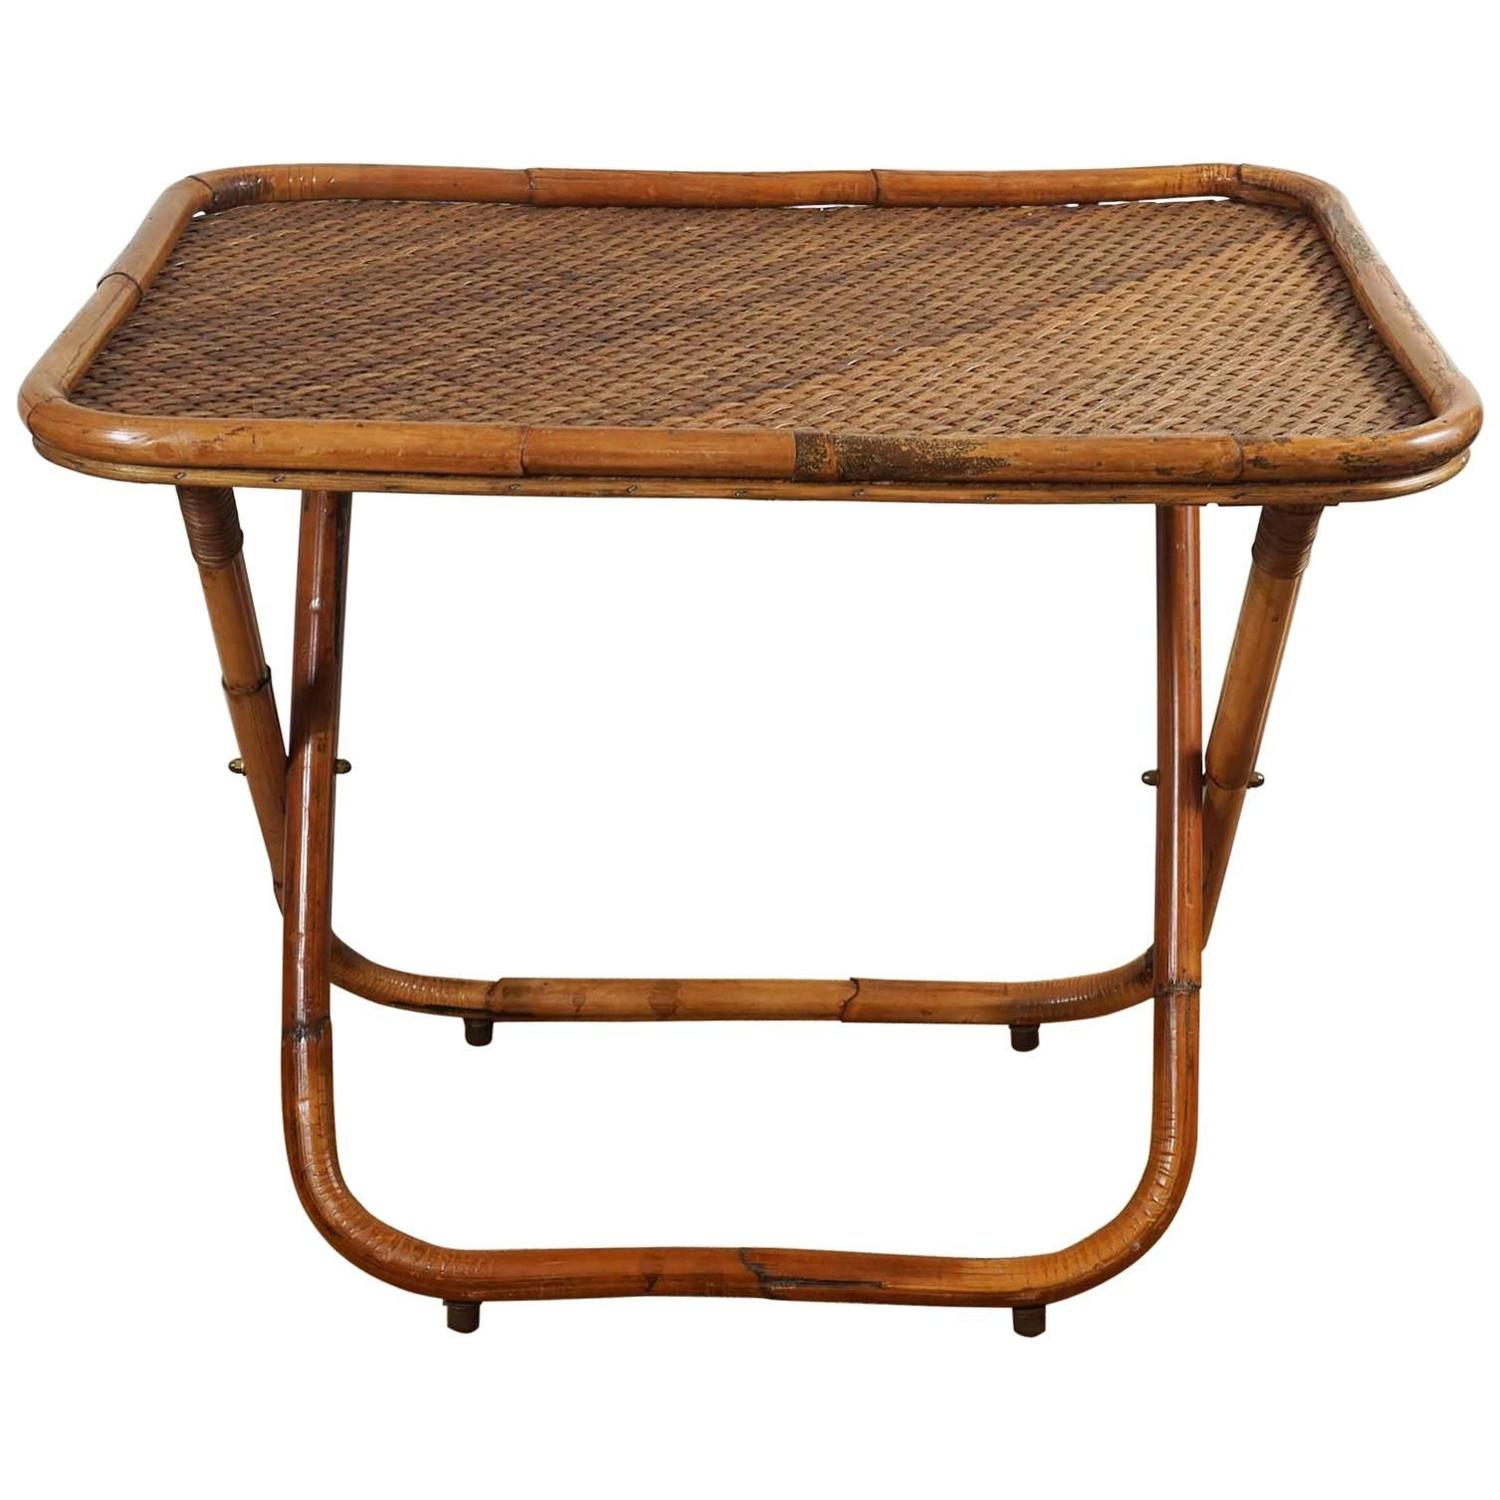 Collapsible Rattan Tray Table For Sale At 1stdibs